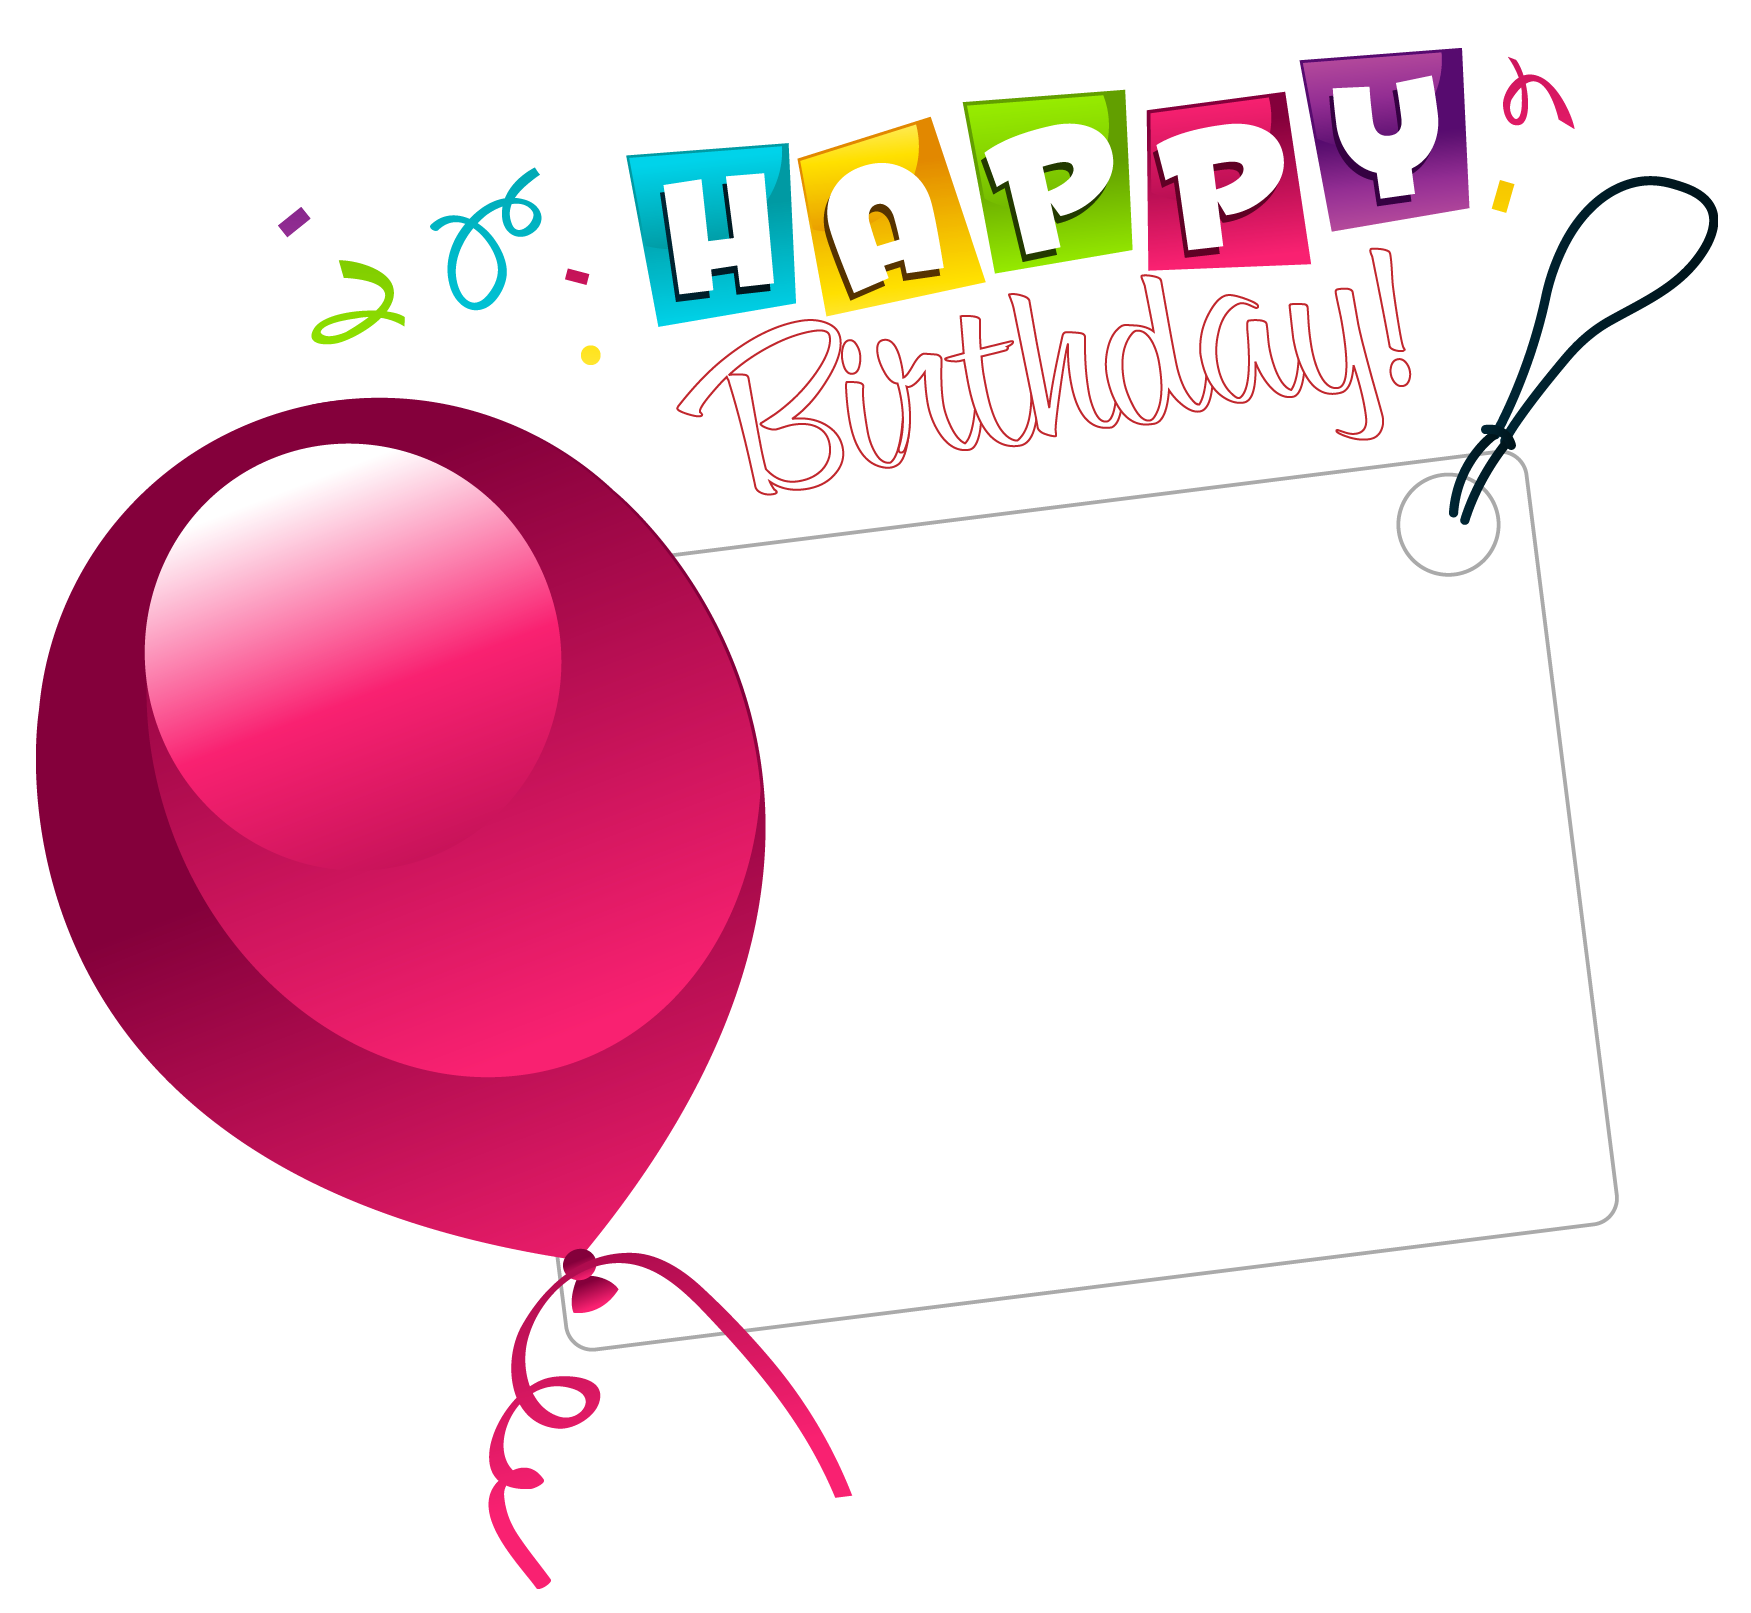 Happy birthday heart clipart for her transparent download Happy Birthday Transparent Sticker with Pink Balloon | Gallery ... transparent download